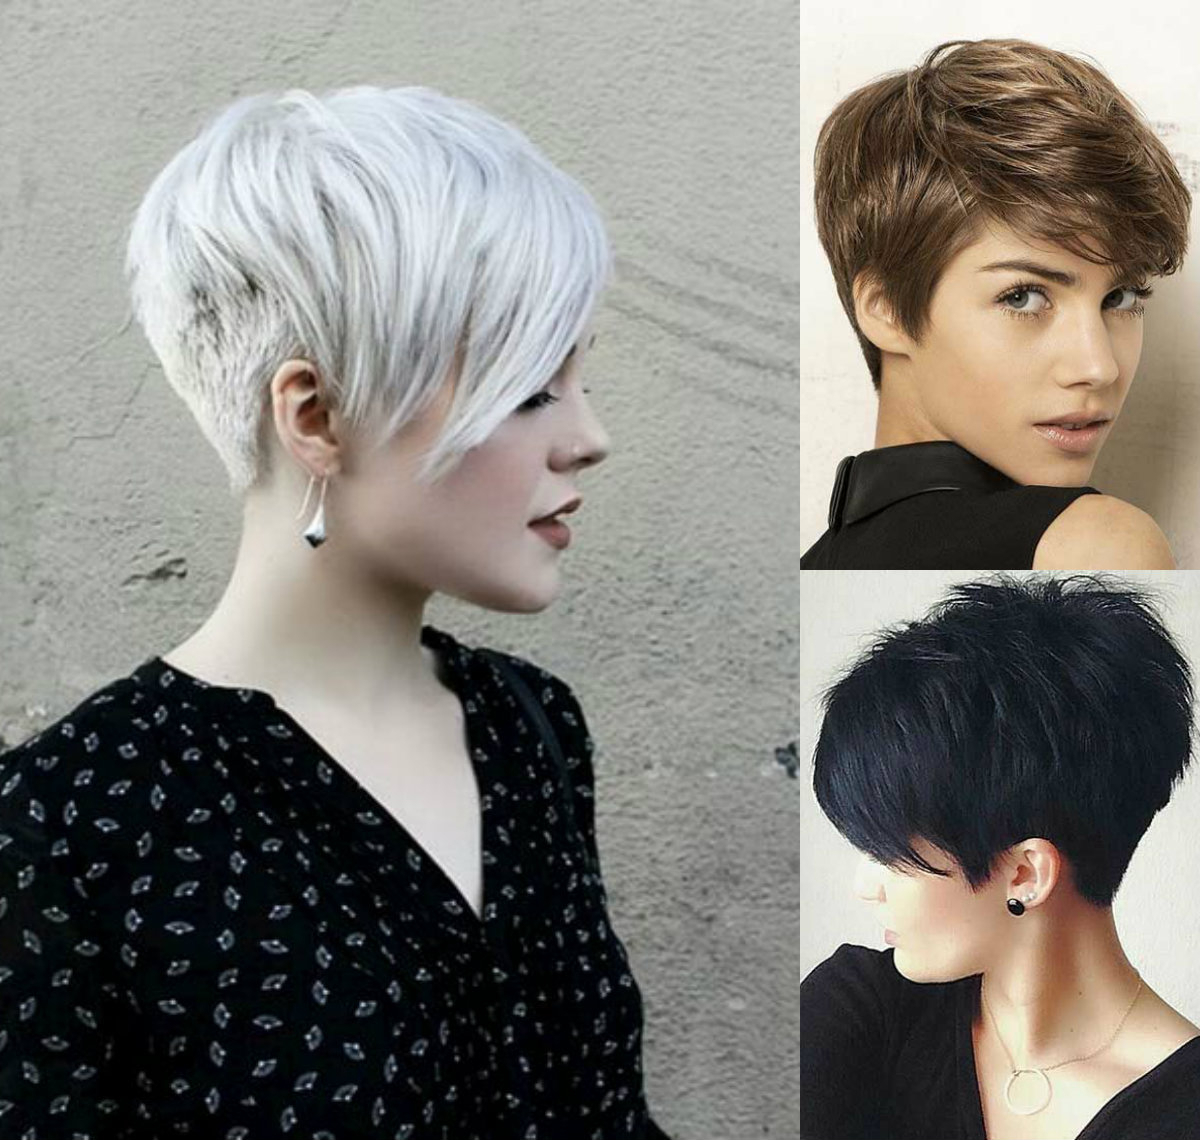 Vibrant Layered Pixie Haircuts 2017 | Hairdrome Inside Messy Pixie Hairstyles For Short Hair (Gallery 20 of 20)